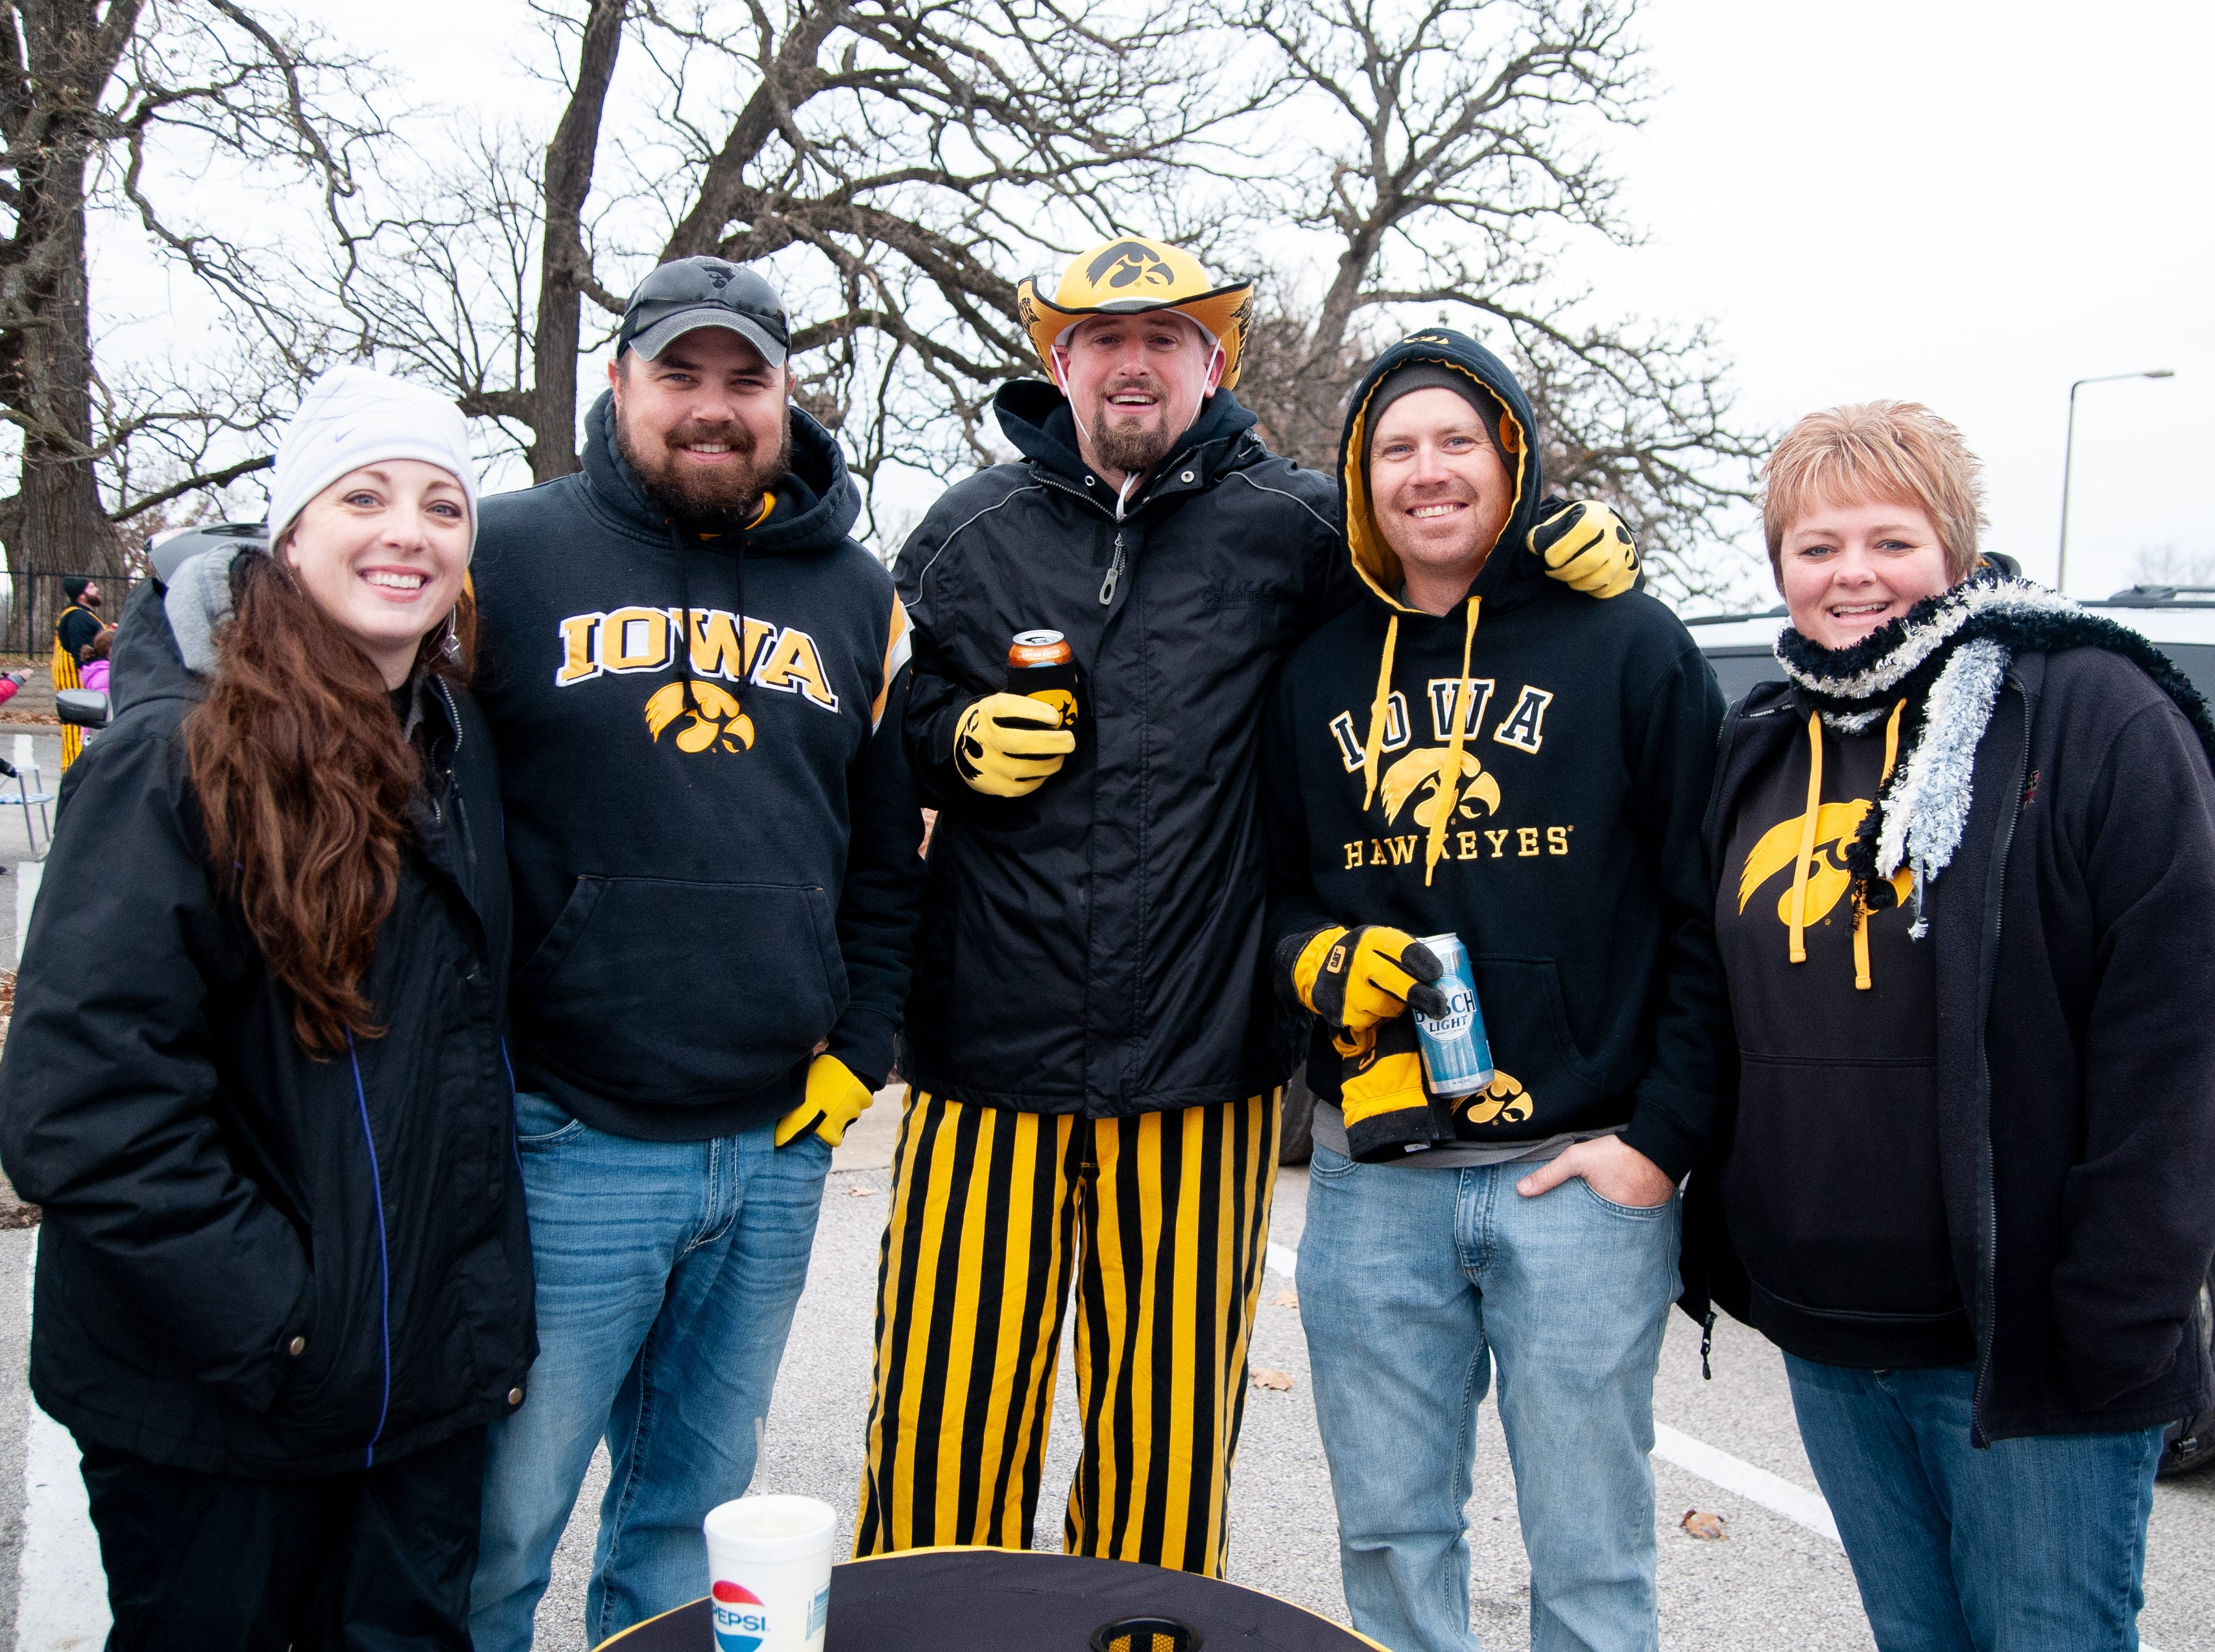 The Fifth Wheel Tailgate, of Anamosa, Friday, Nov. 23, 2018, while tailgating before the Iowa game against Nebraska in Iowa City.